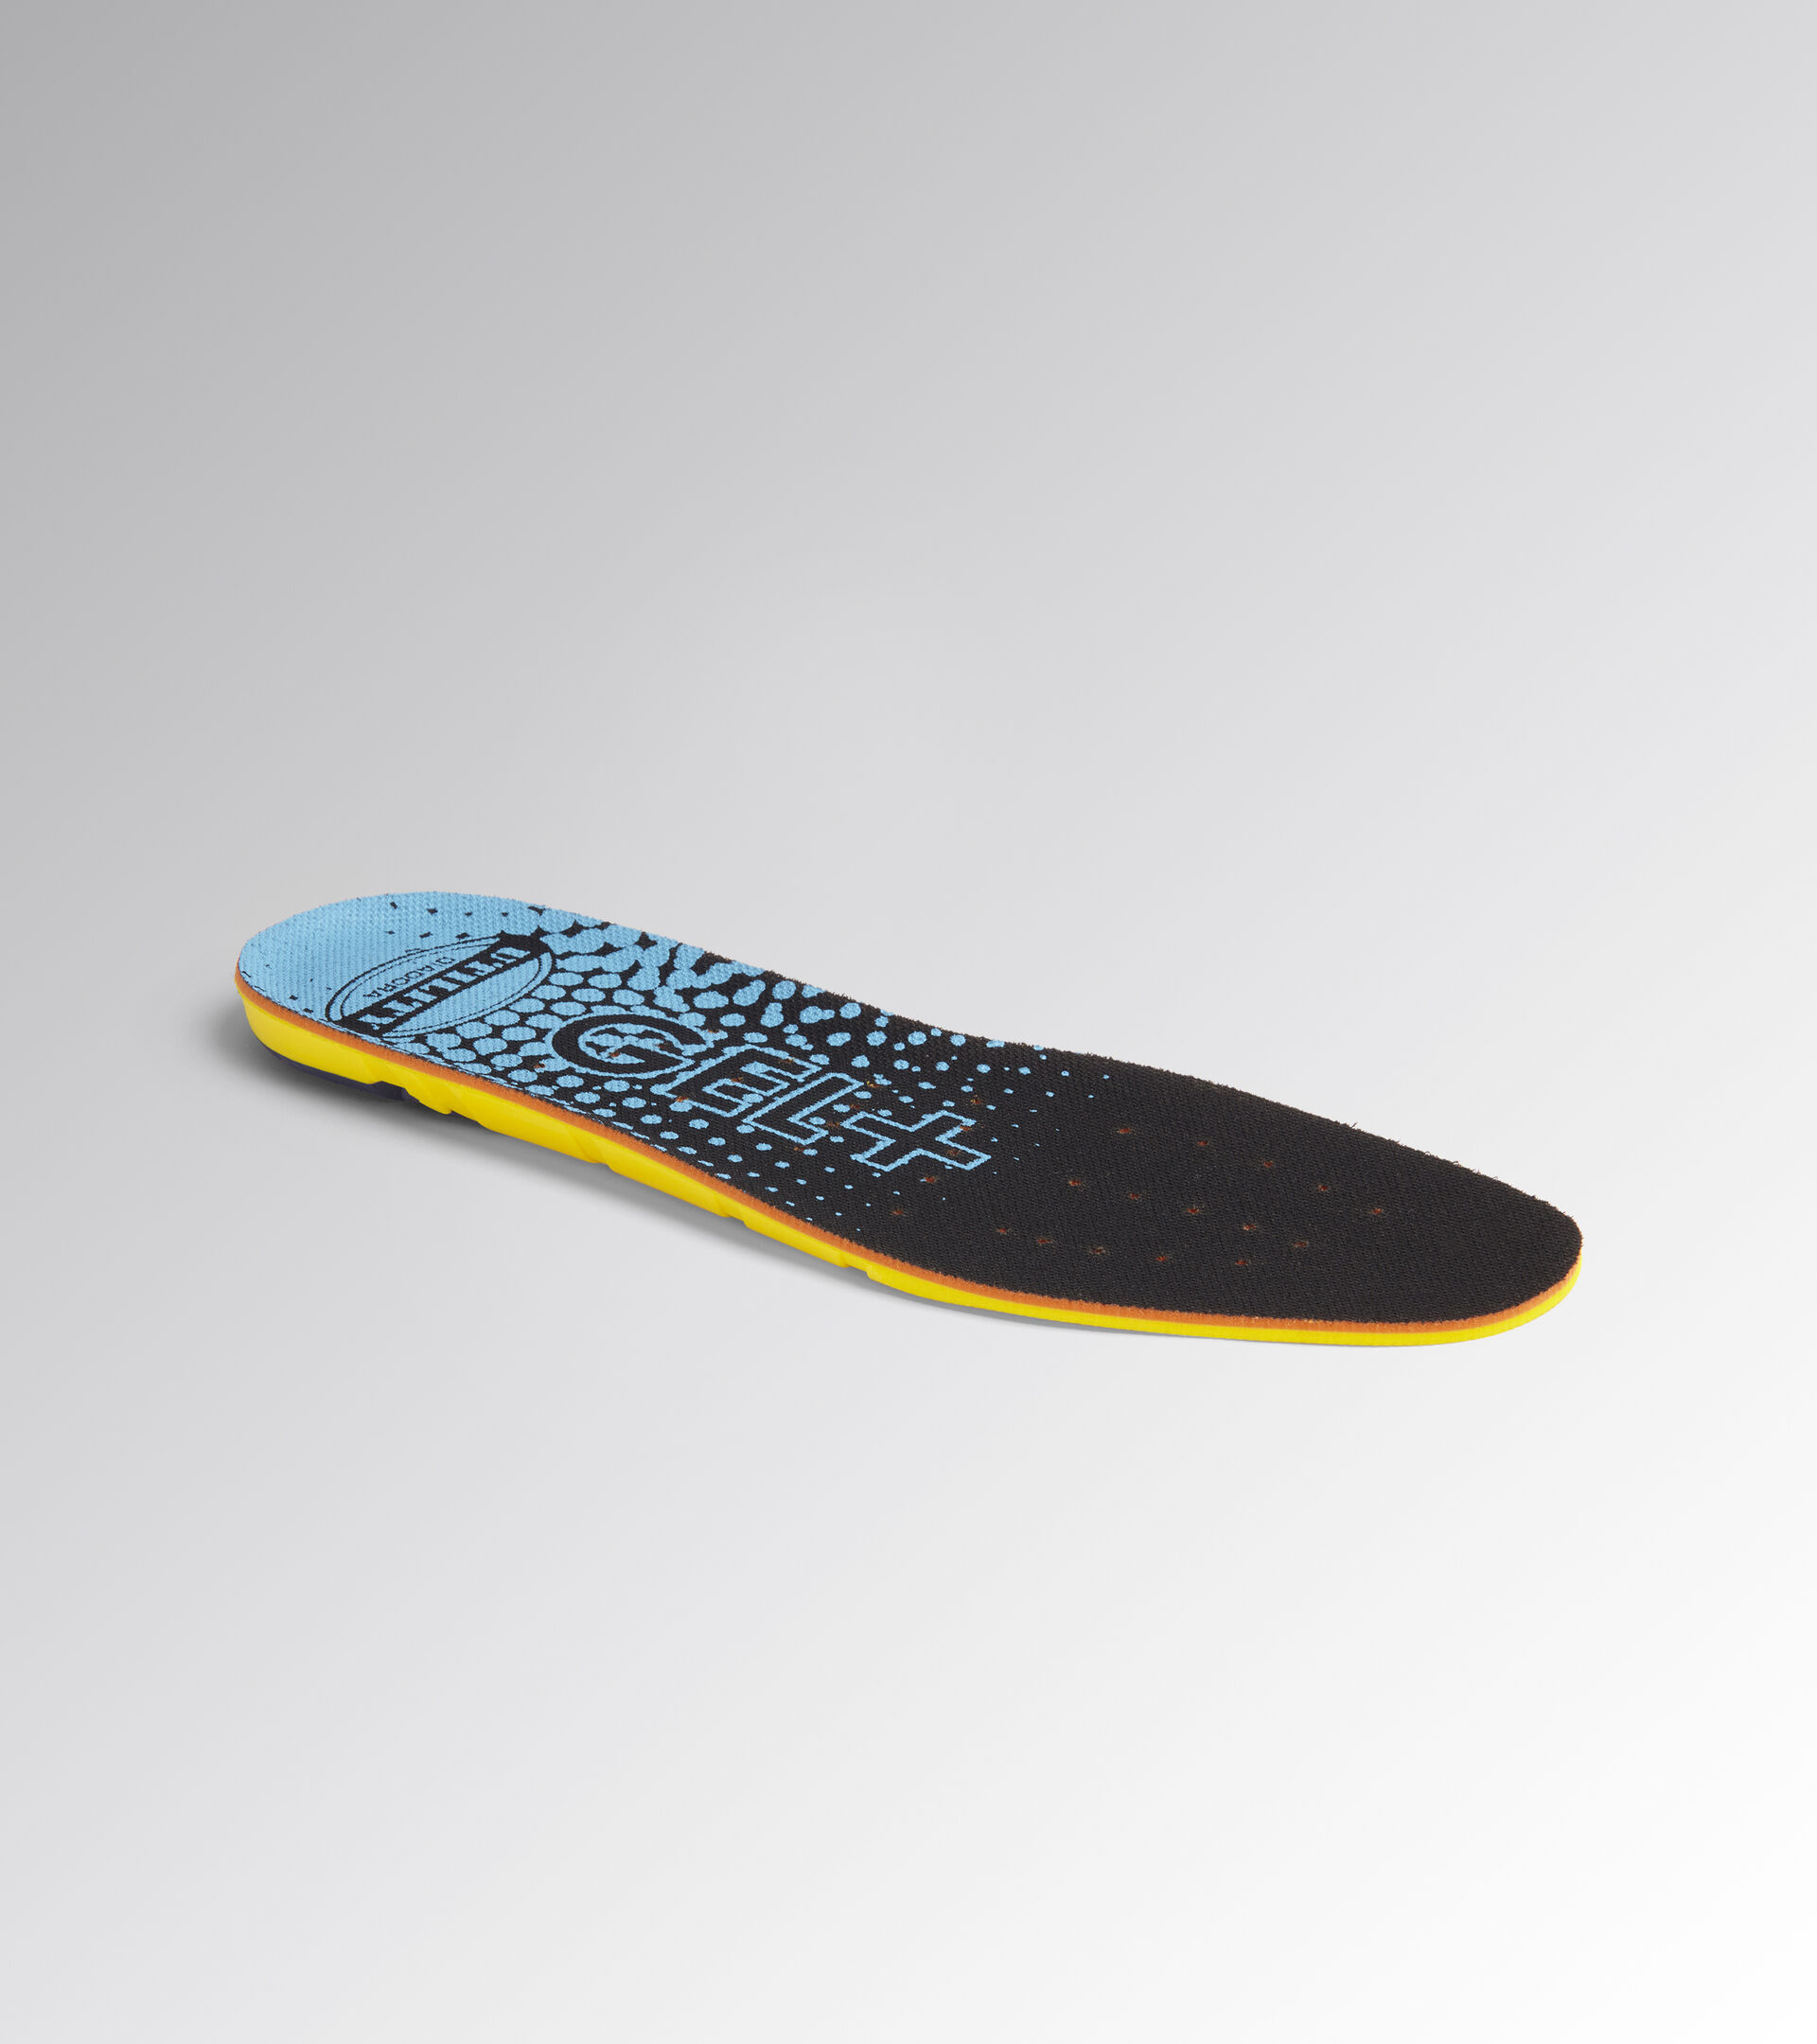 Accessories Utility UNISEX INSOLE GEL PERFORMANCE SKY BLUE/YELLOW UTILITY Utility